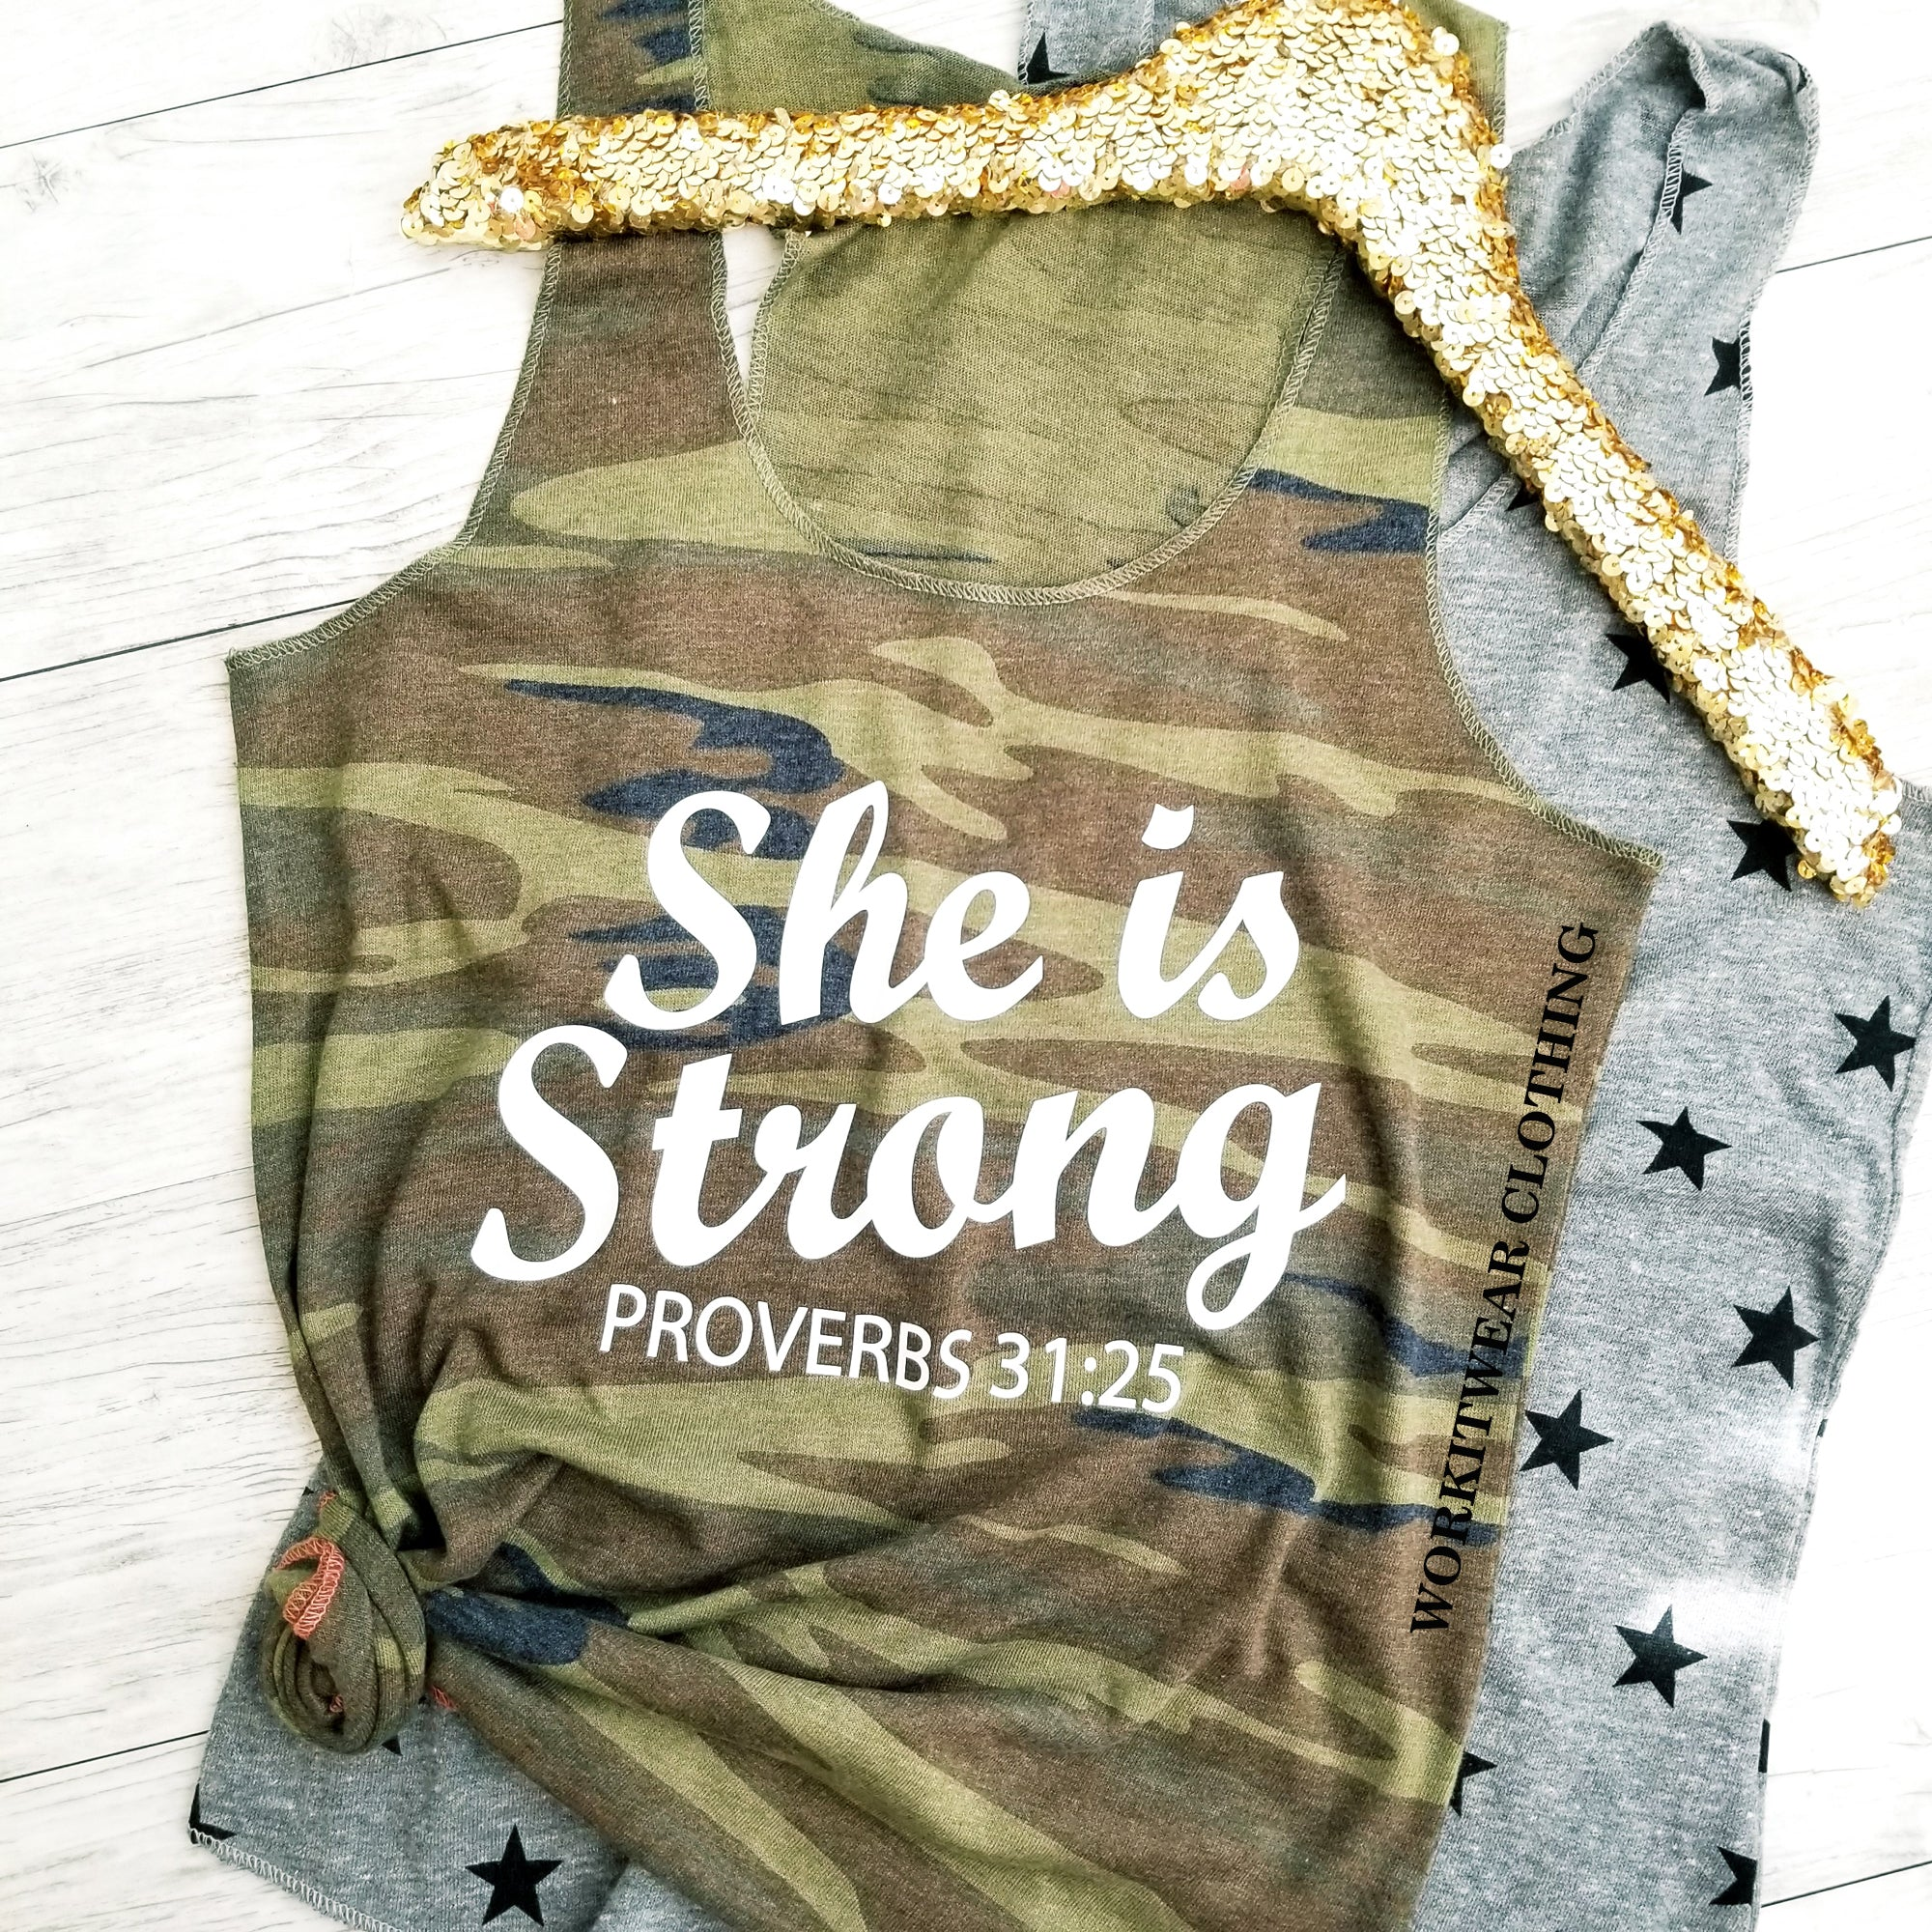 She Is Strong Proverbs 31:25. Faith Inspirational Tank. Workout Tank Top. Christian Clothing. Mom Strong. Military. Bootcamp. Fitness Tank